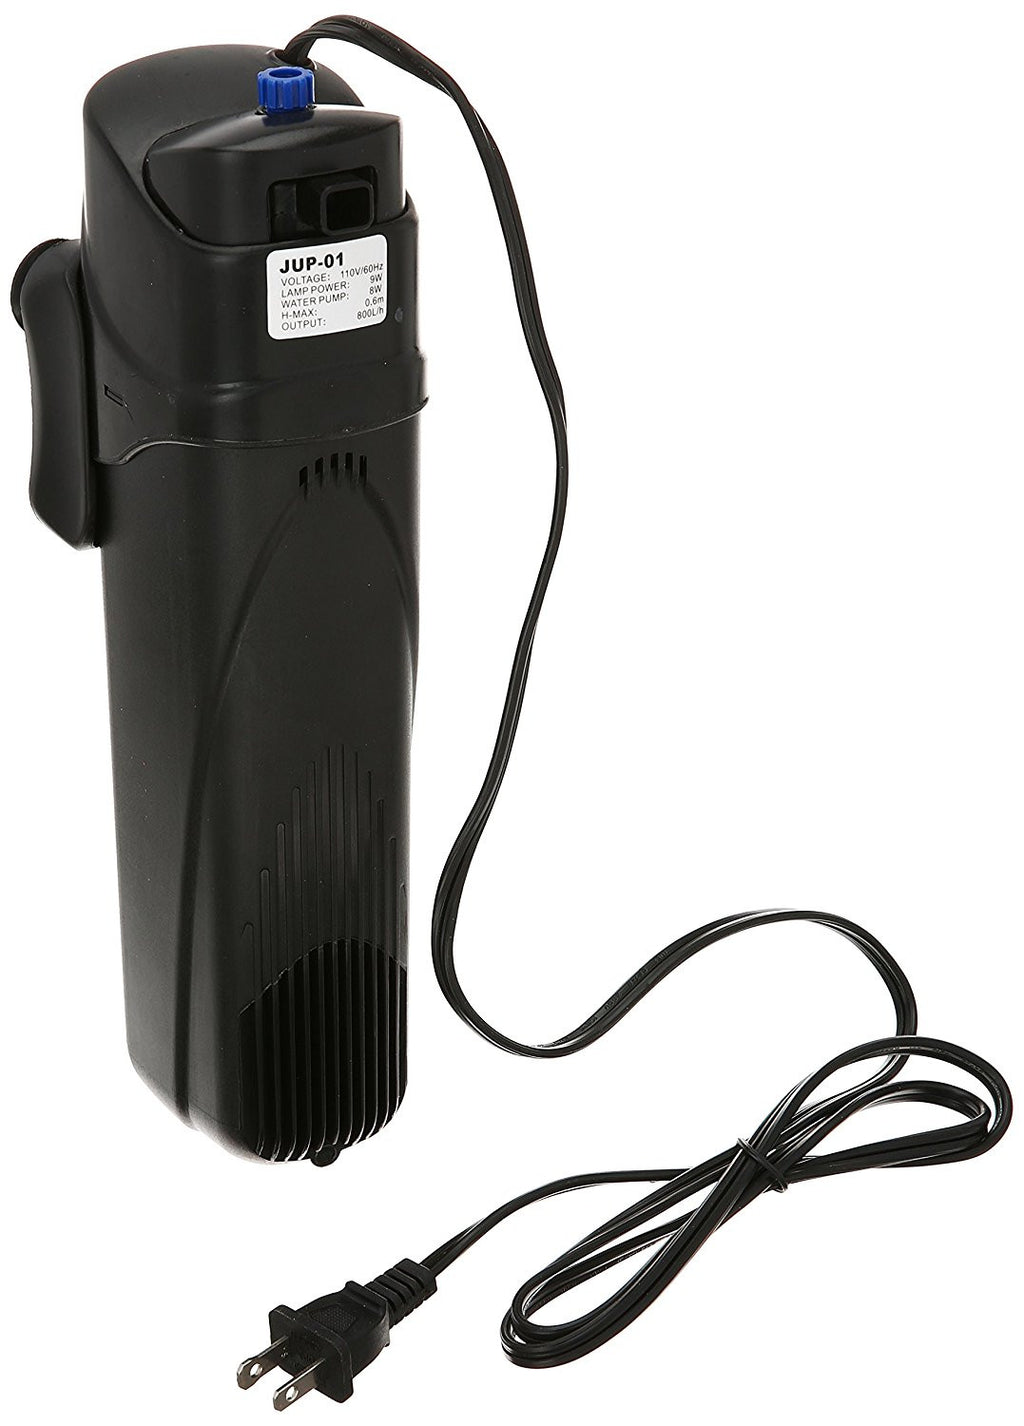 SunSun JUP-22 UV Steriliser (22W)